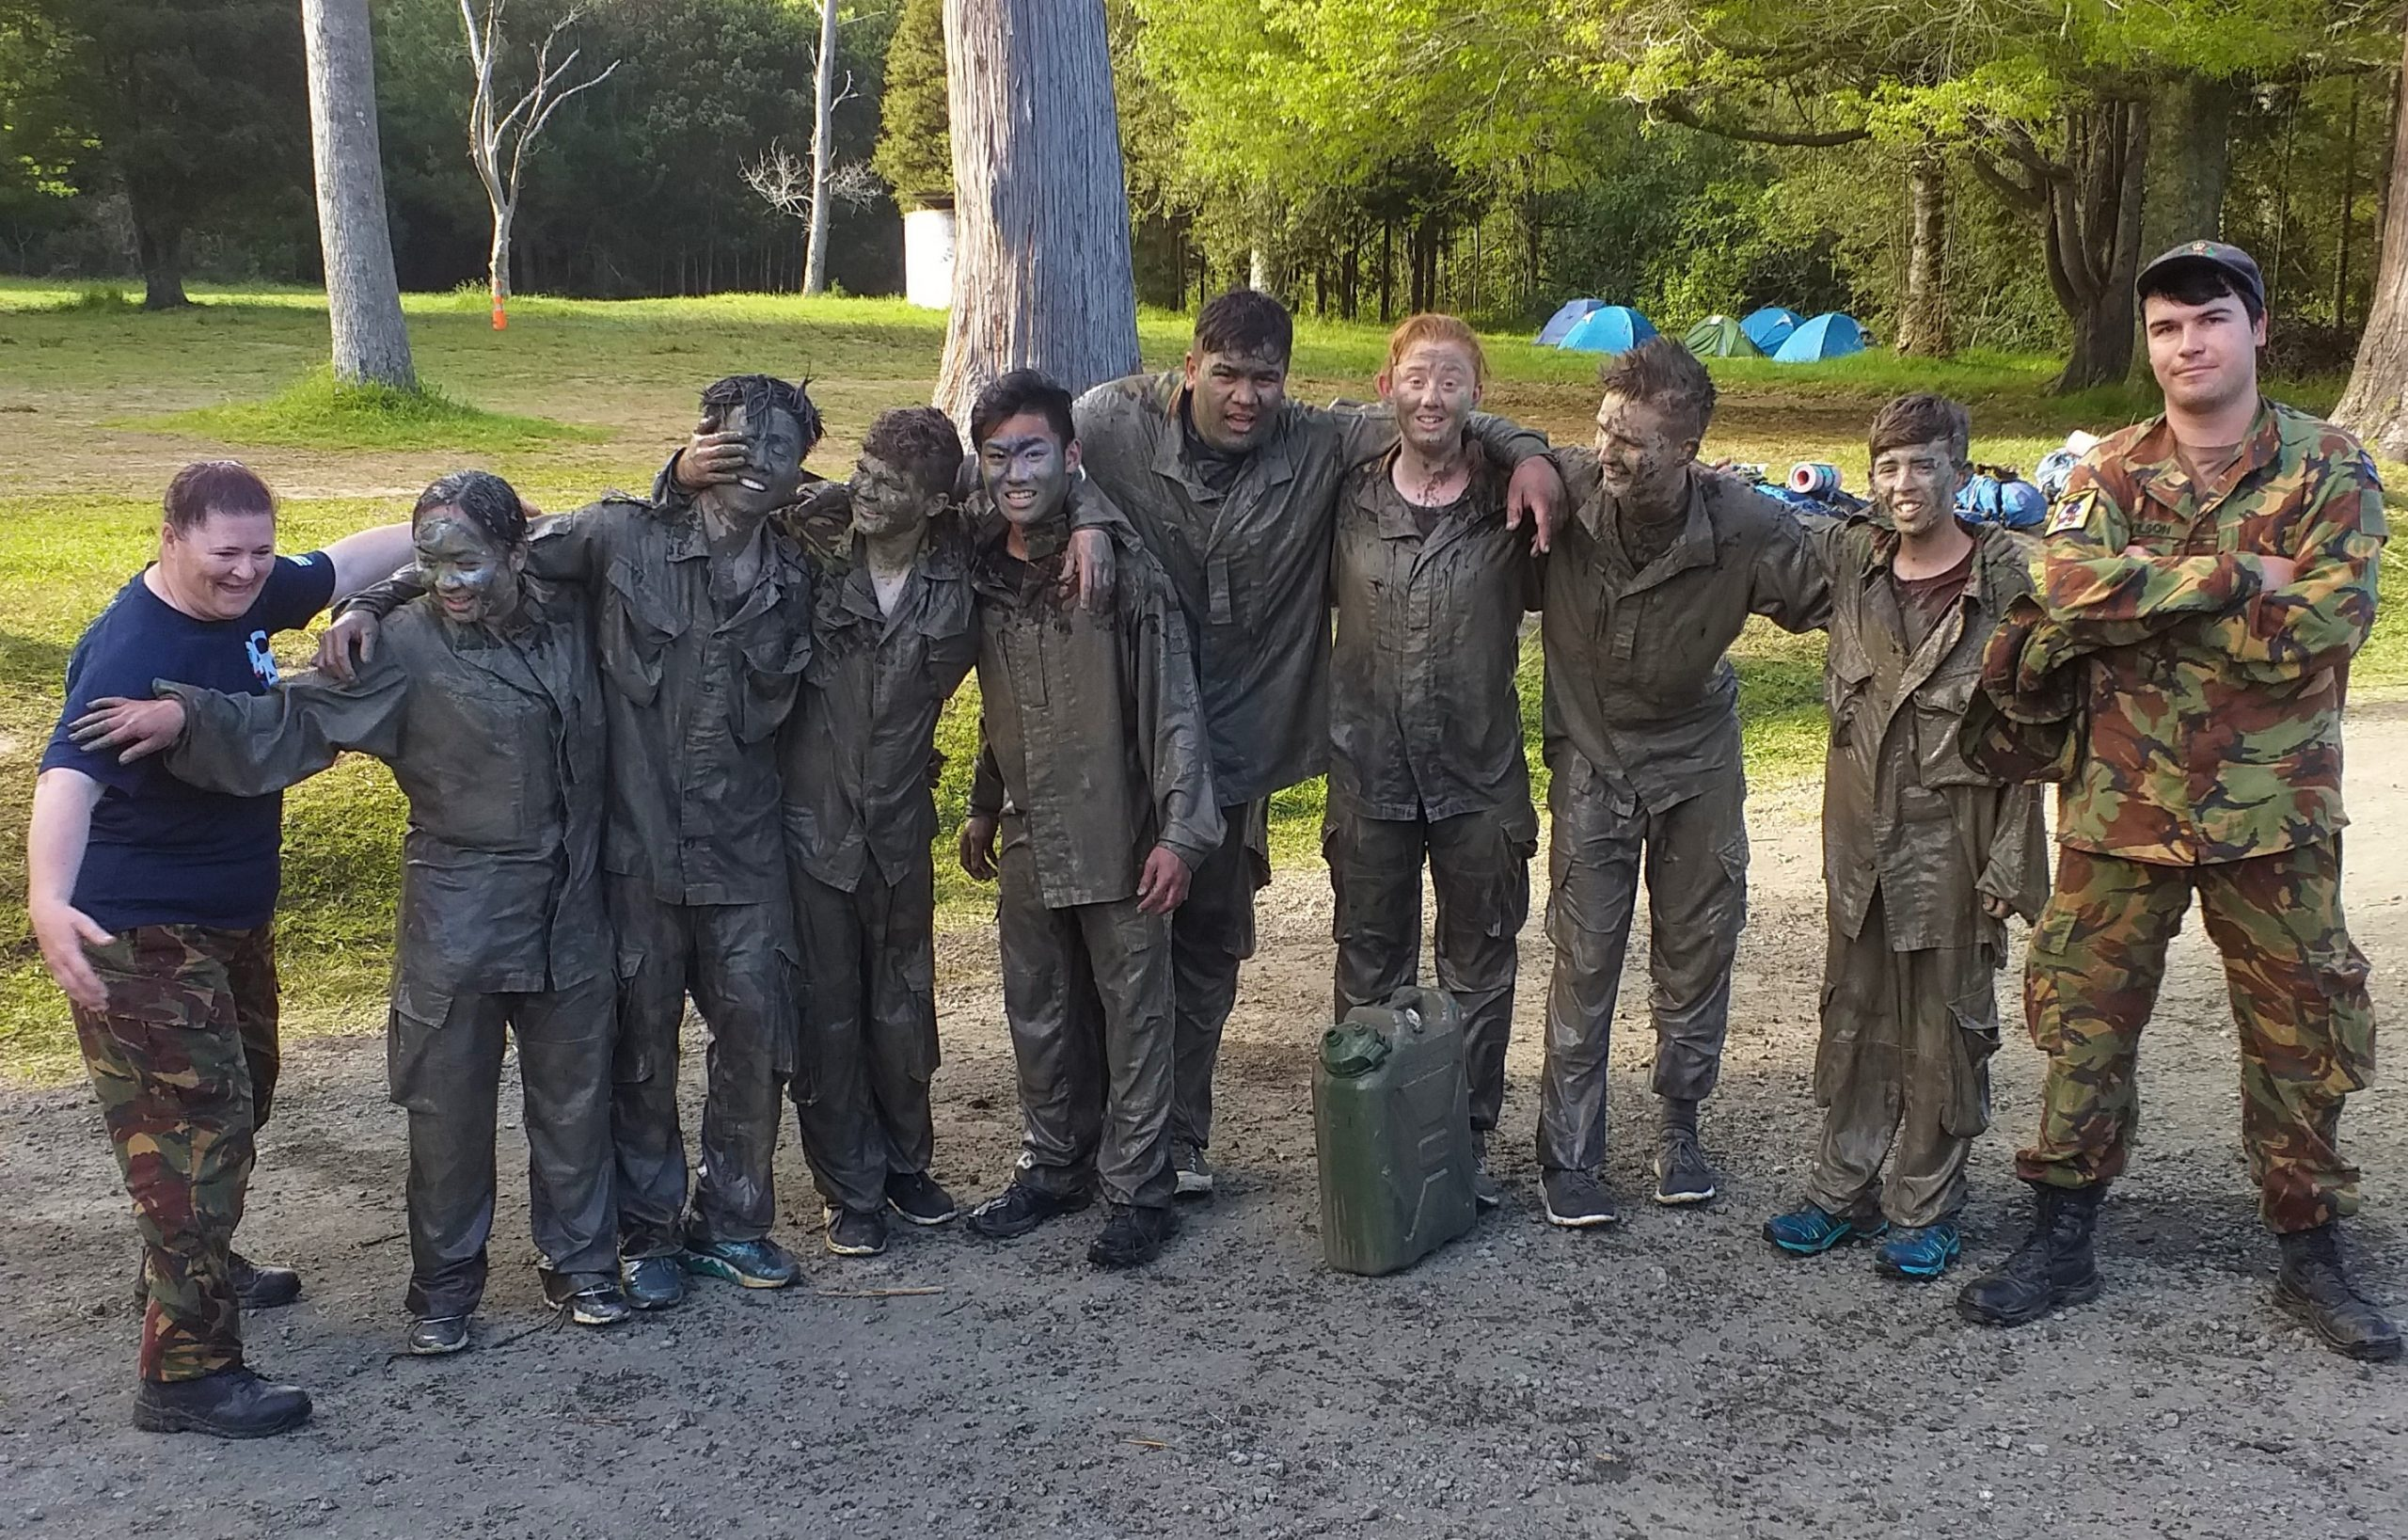 The Ashburton Cadet Unit and support staff after the testing mud run activity. Photo: Supplied